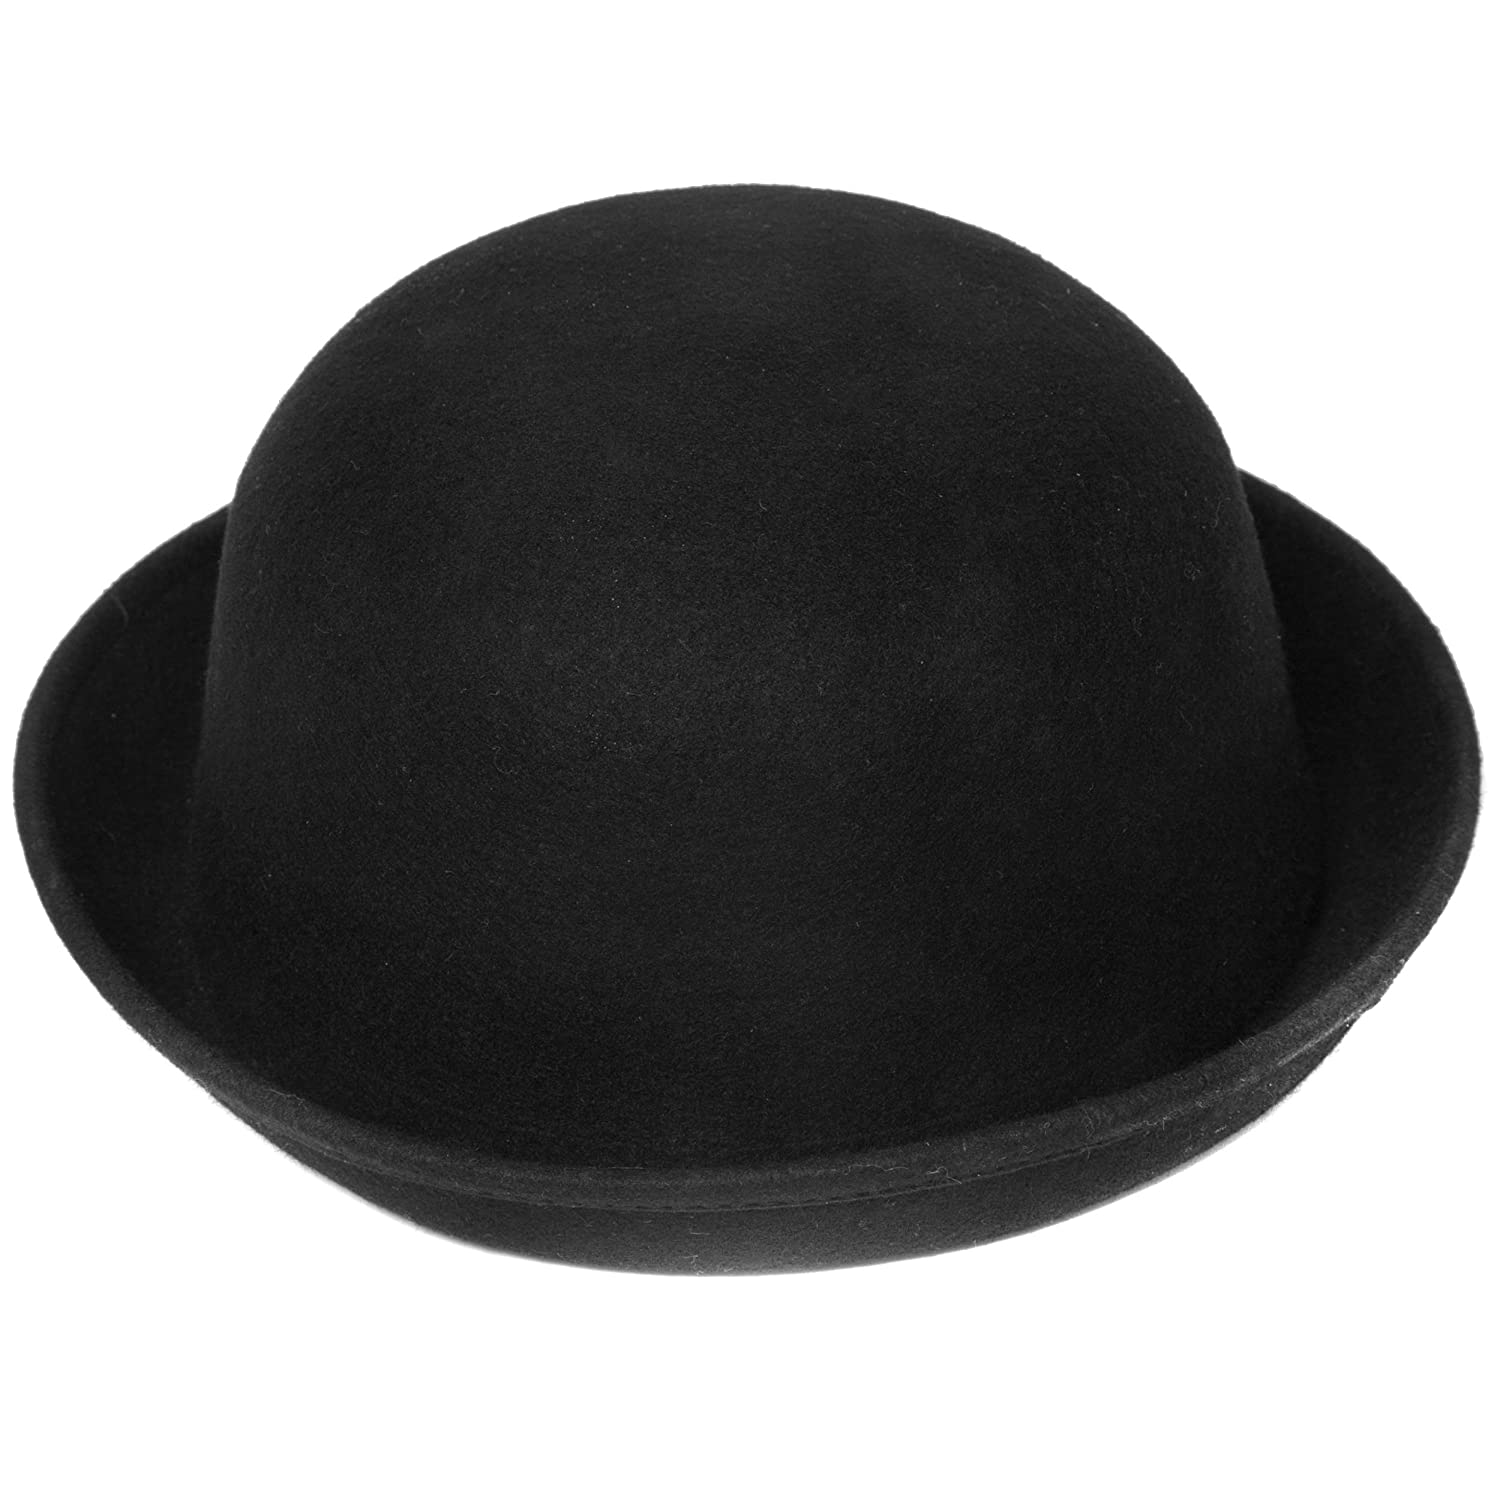 Plain Black Wool Bowler Hat Available in a Selection of Sizes